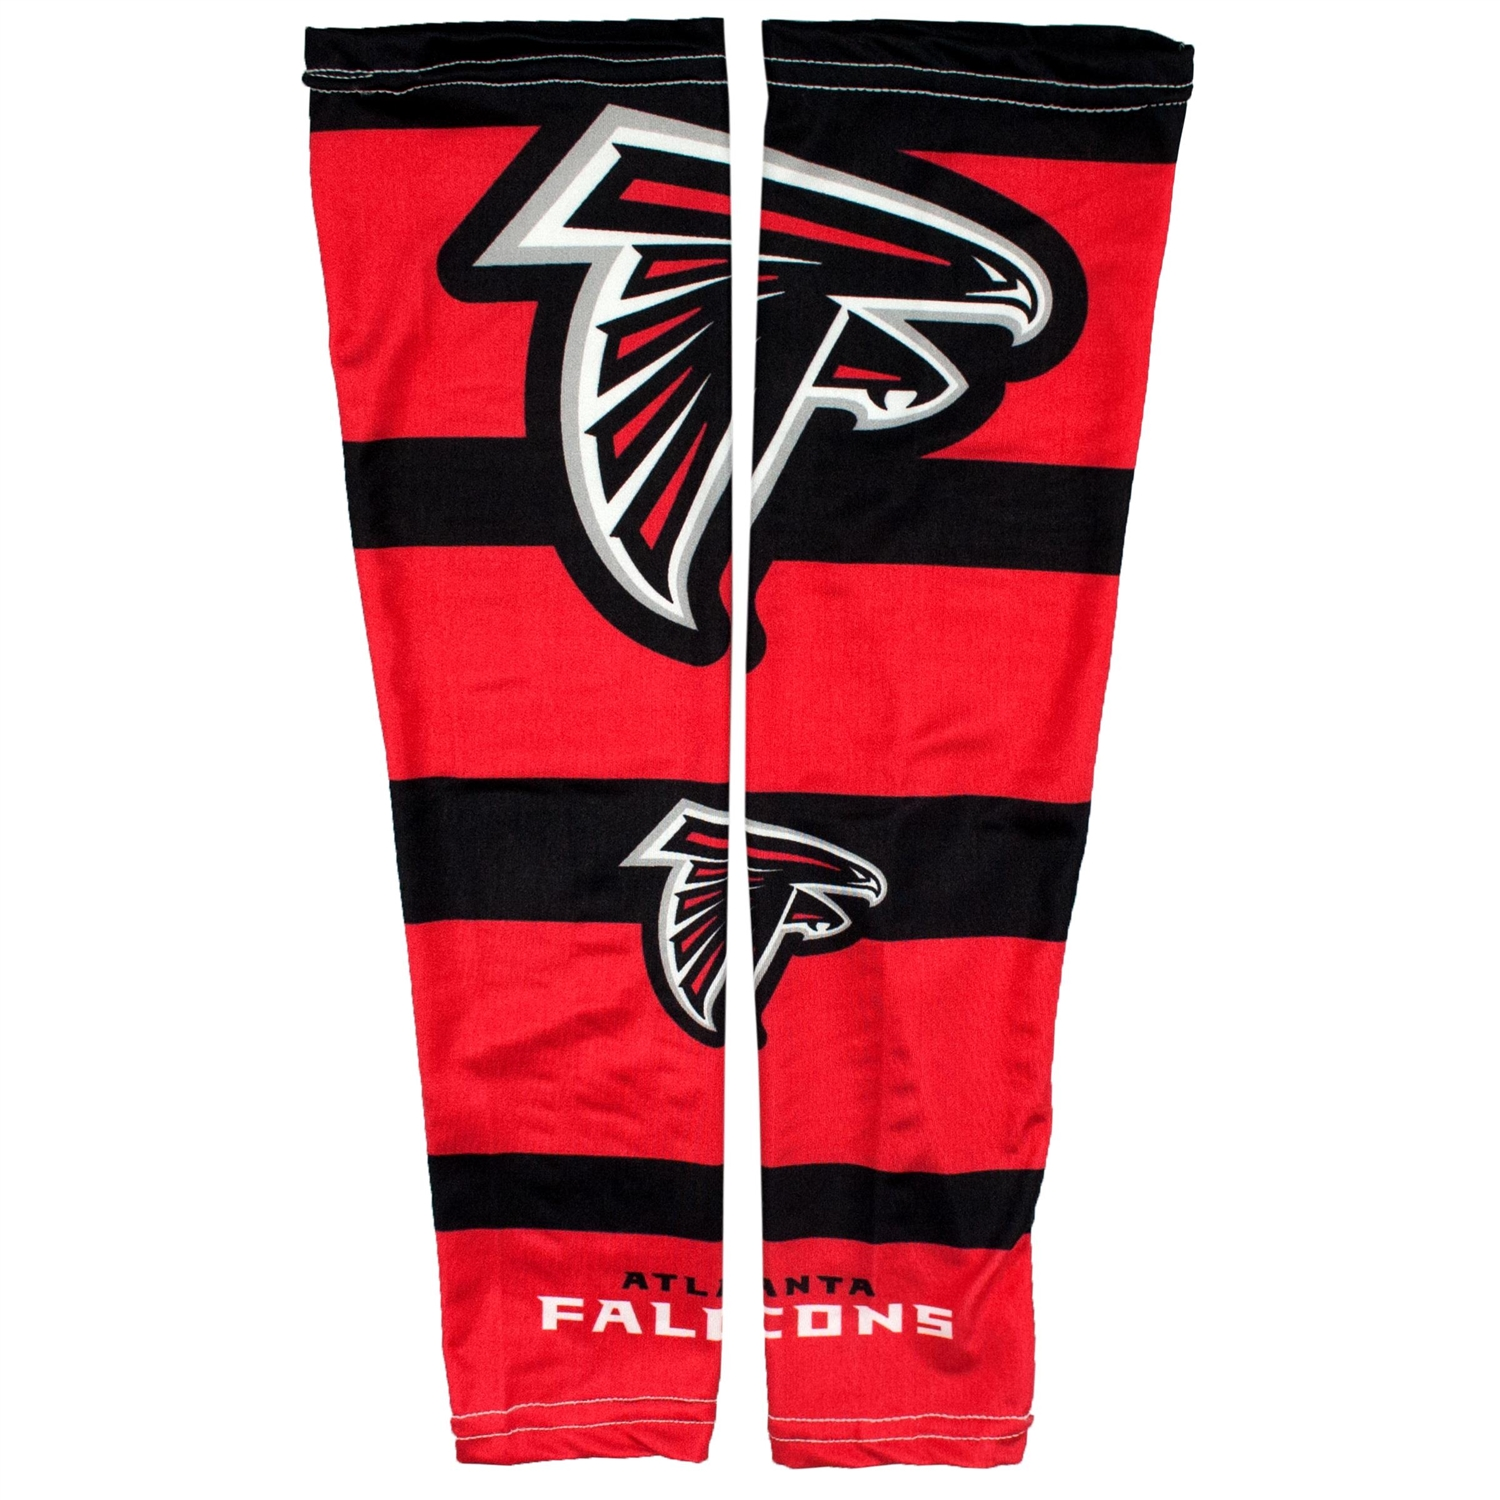 Nfl Football Atlanta Falcons Strong Arm Sleeves - 300612-falc - Atlanta Falcons Strong Arm 300612-FALC